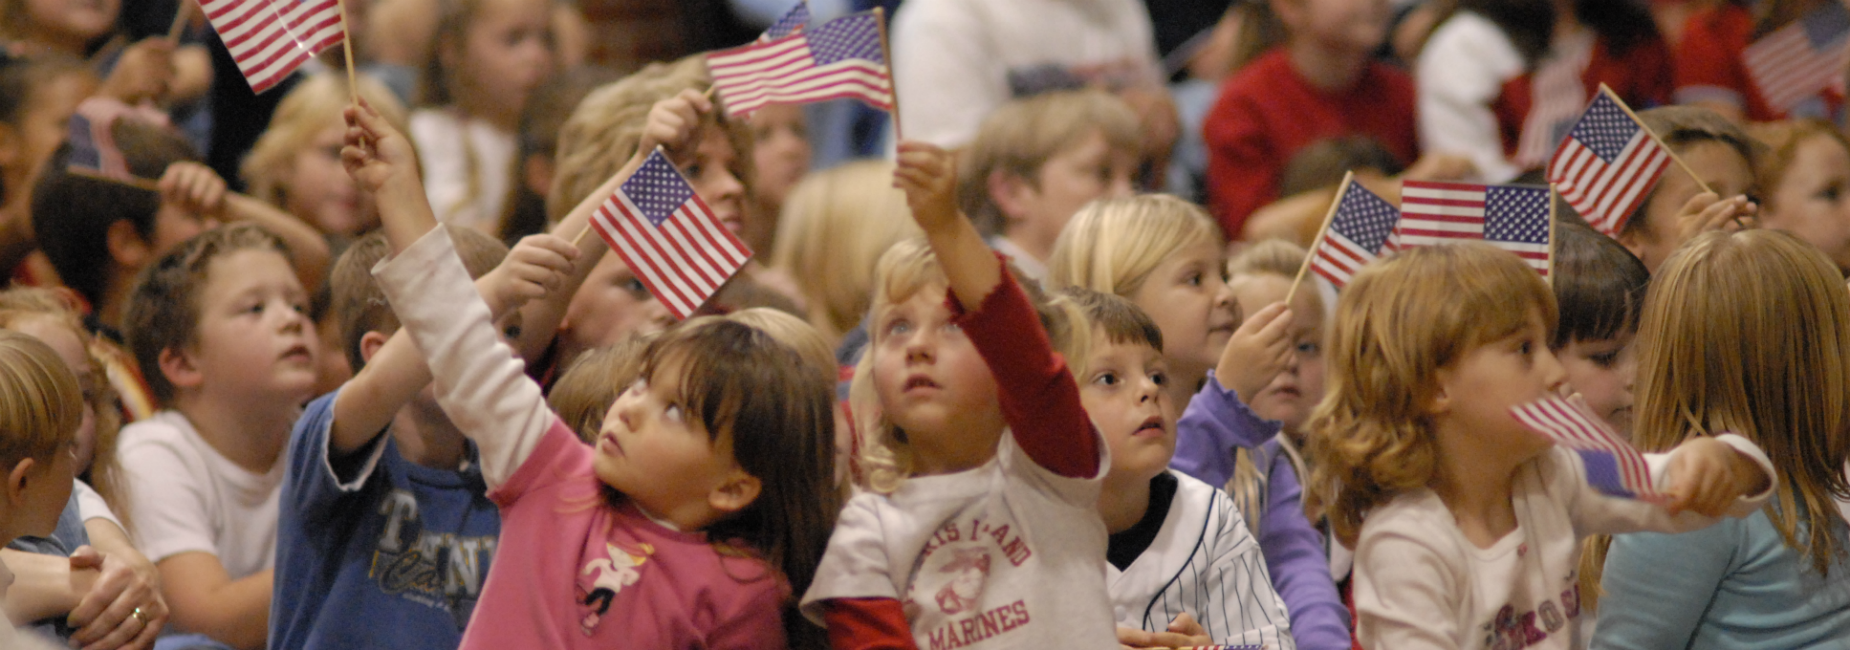 Children holding up American flags.